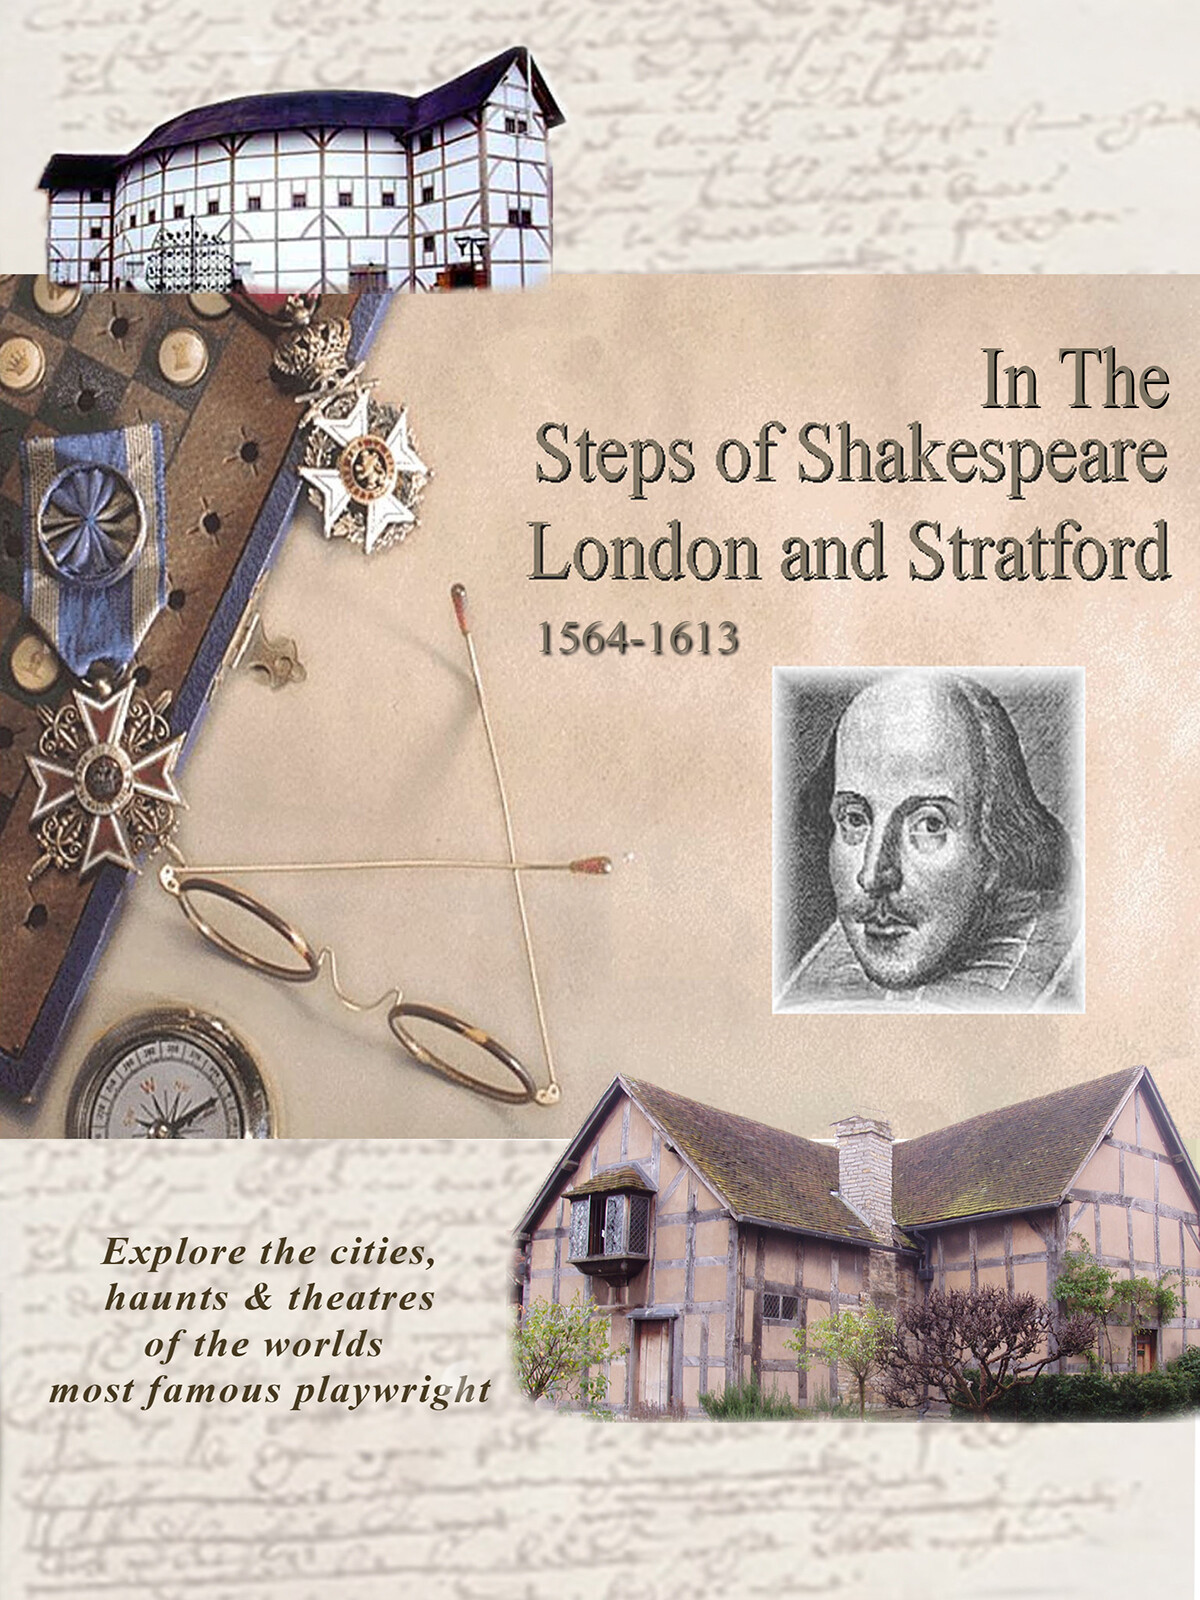 B401 - In The Steps of William Shakespeare London & Stratford 1564 1613